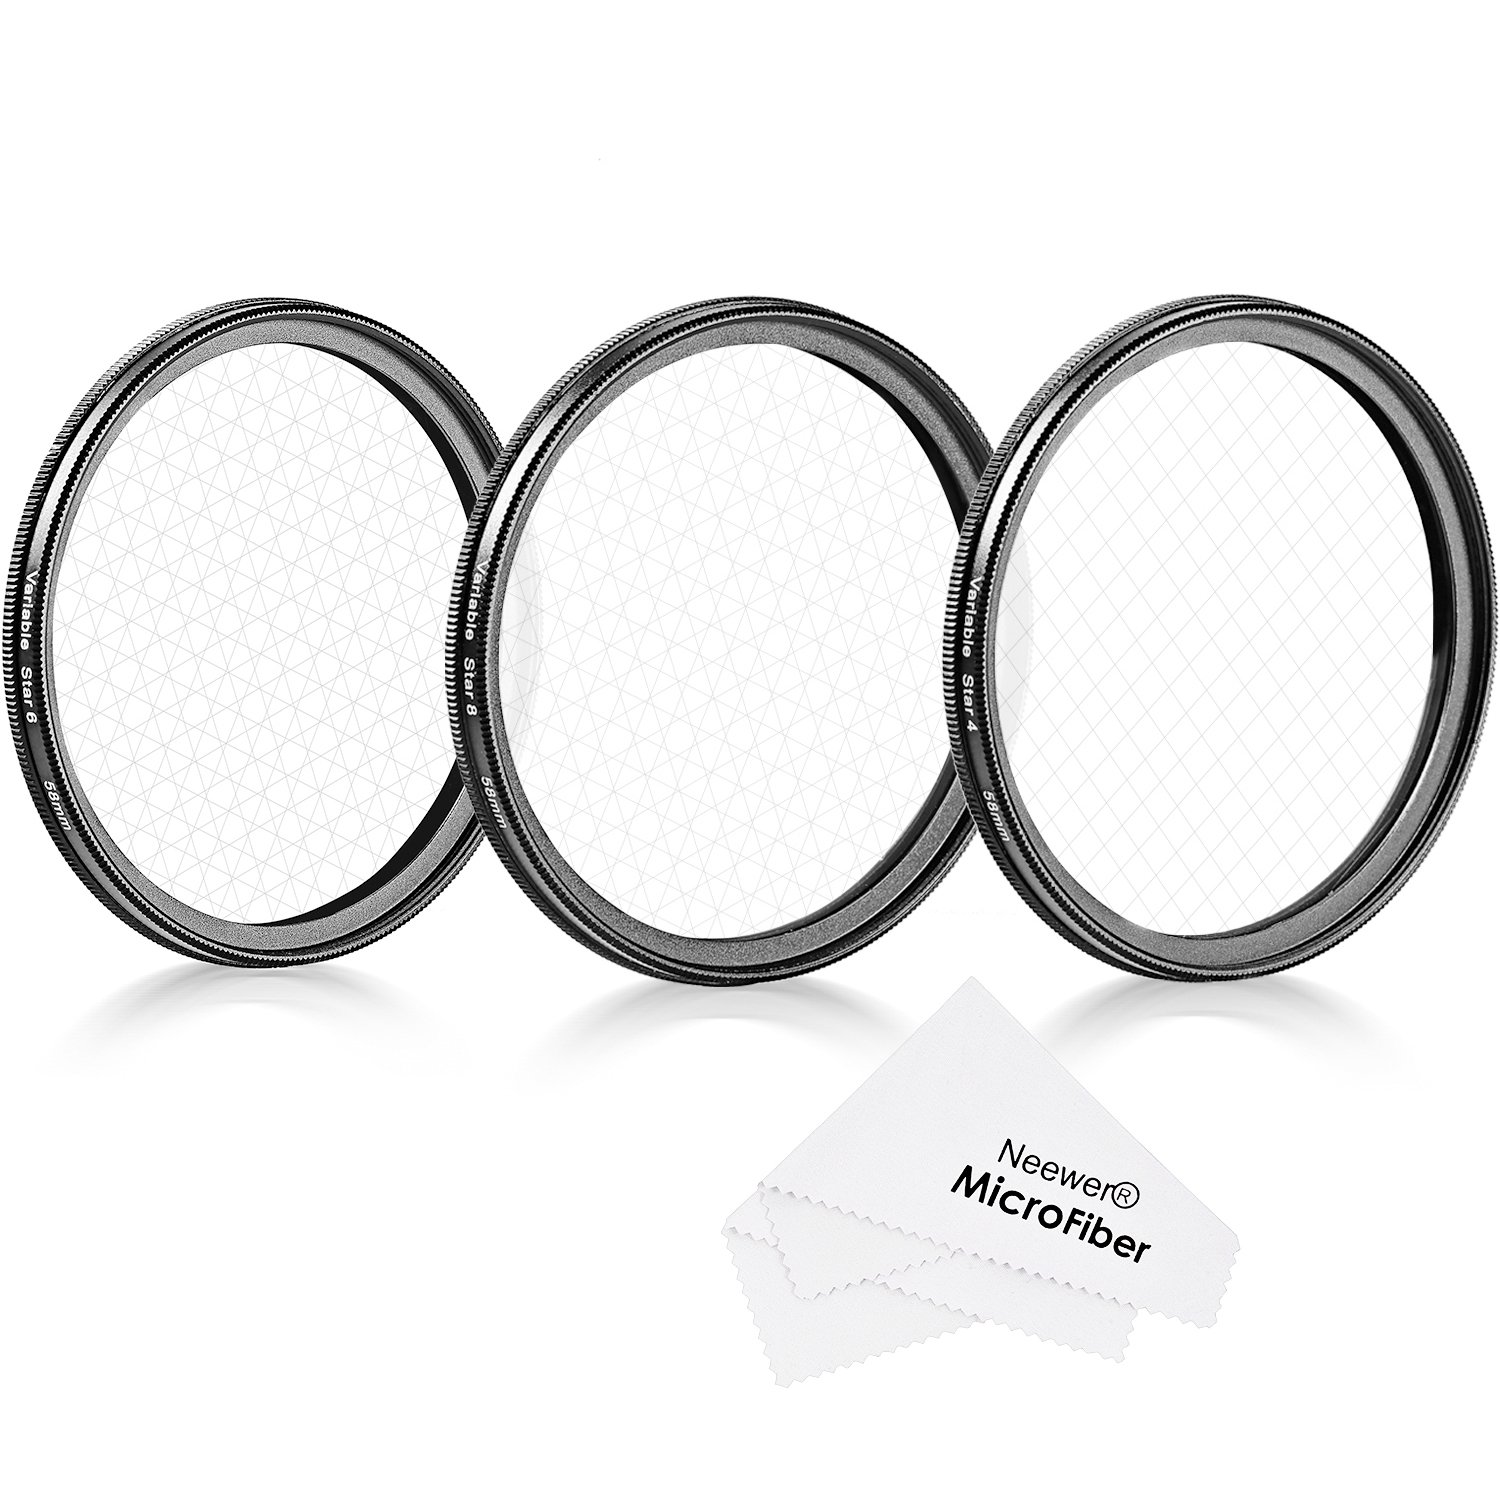 Neewer 58mm Rotated Star Filter Set for Canon Nikon Sony Olympus and Other DSLR Cameras, Includes: 58mm Rotated 4-Point, 6-Point and 8-Point Star Cross Filter with Microfiber Cleaning Cloth by Neewer